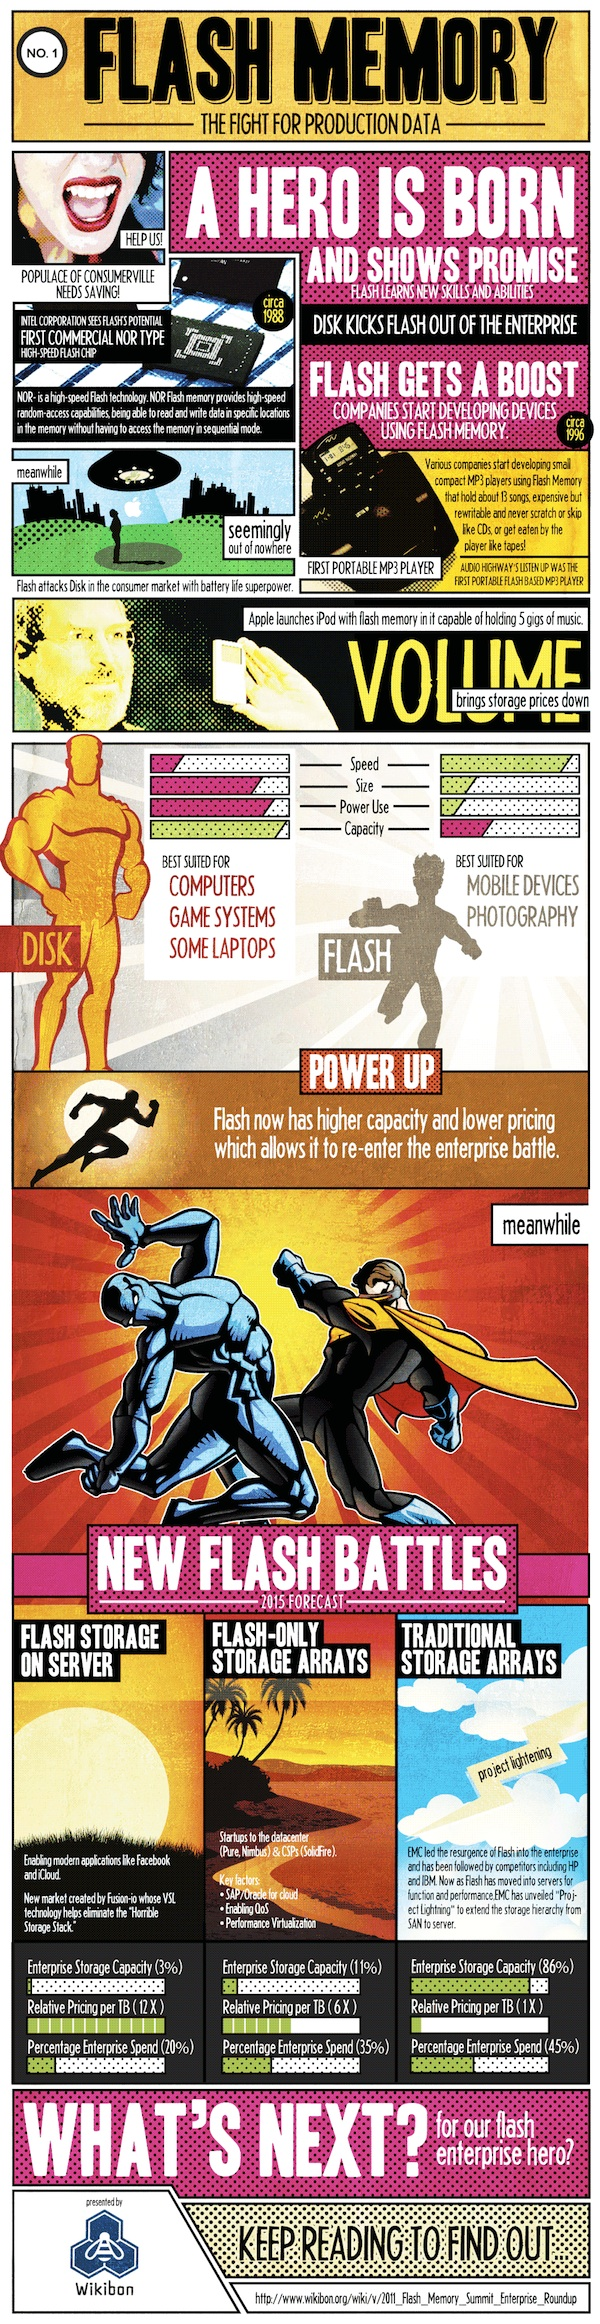 A Hero is Born: Flash Memory 1